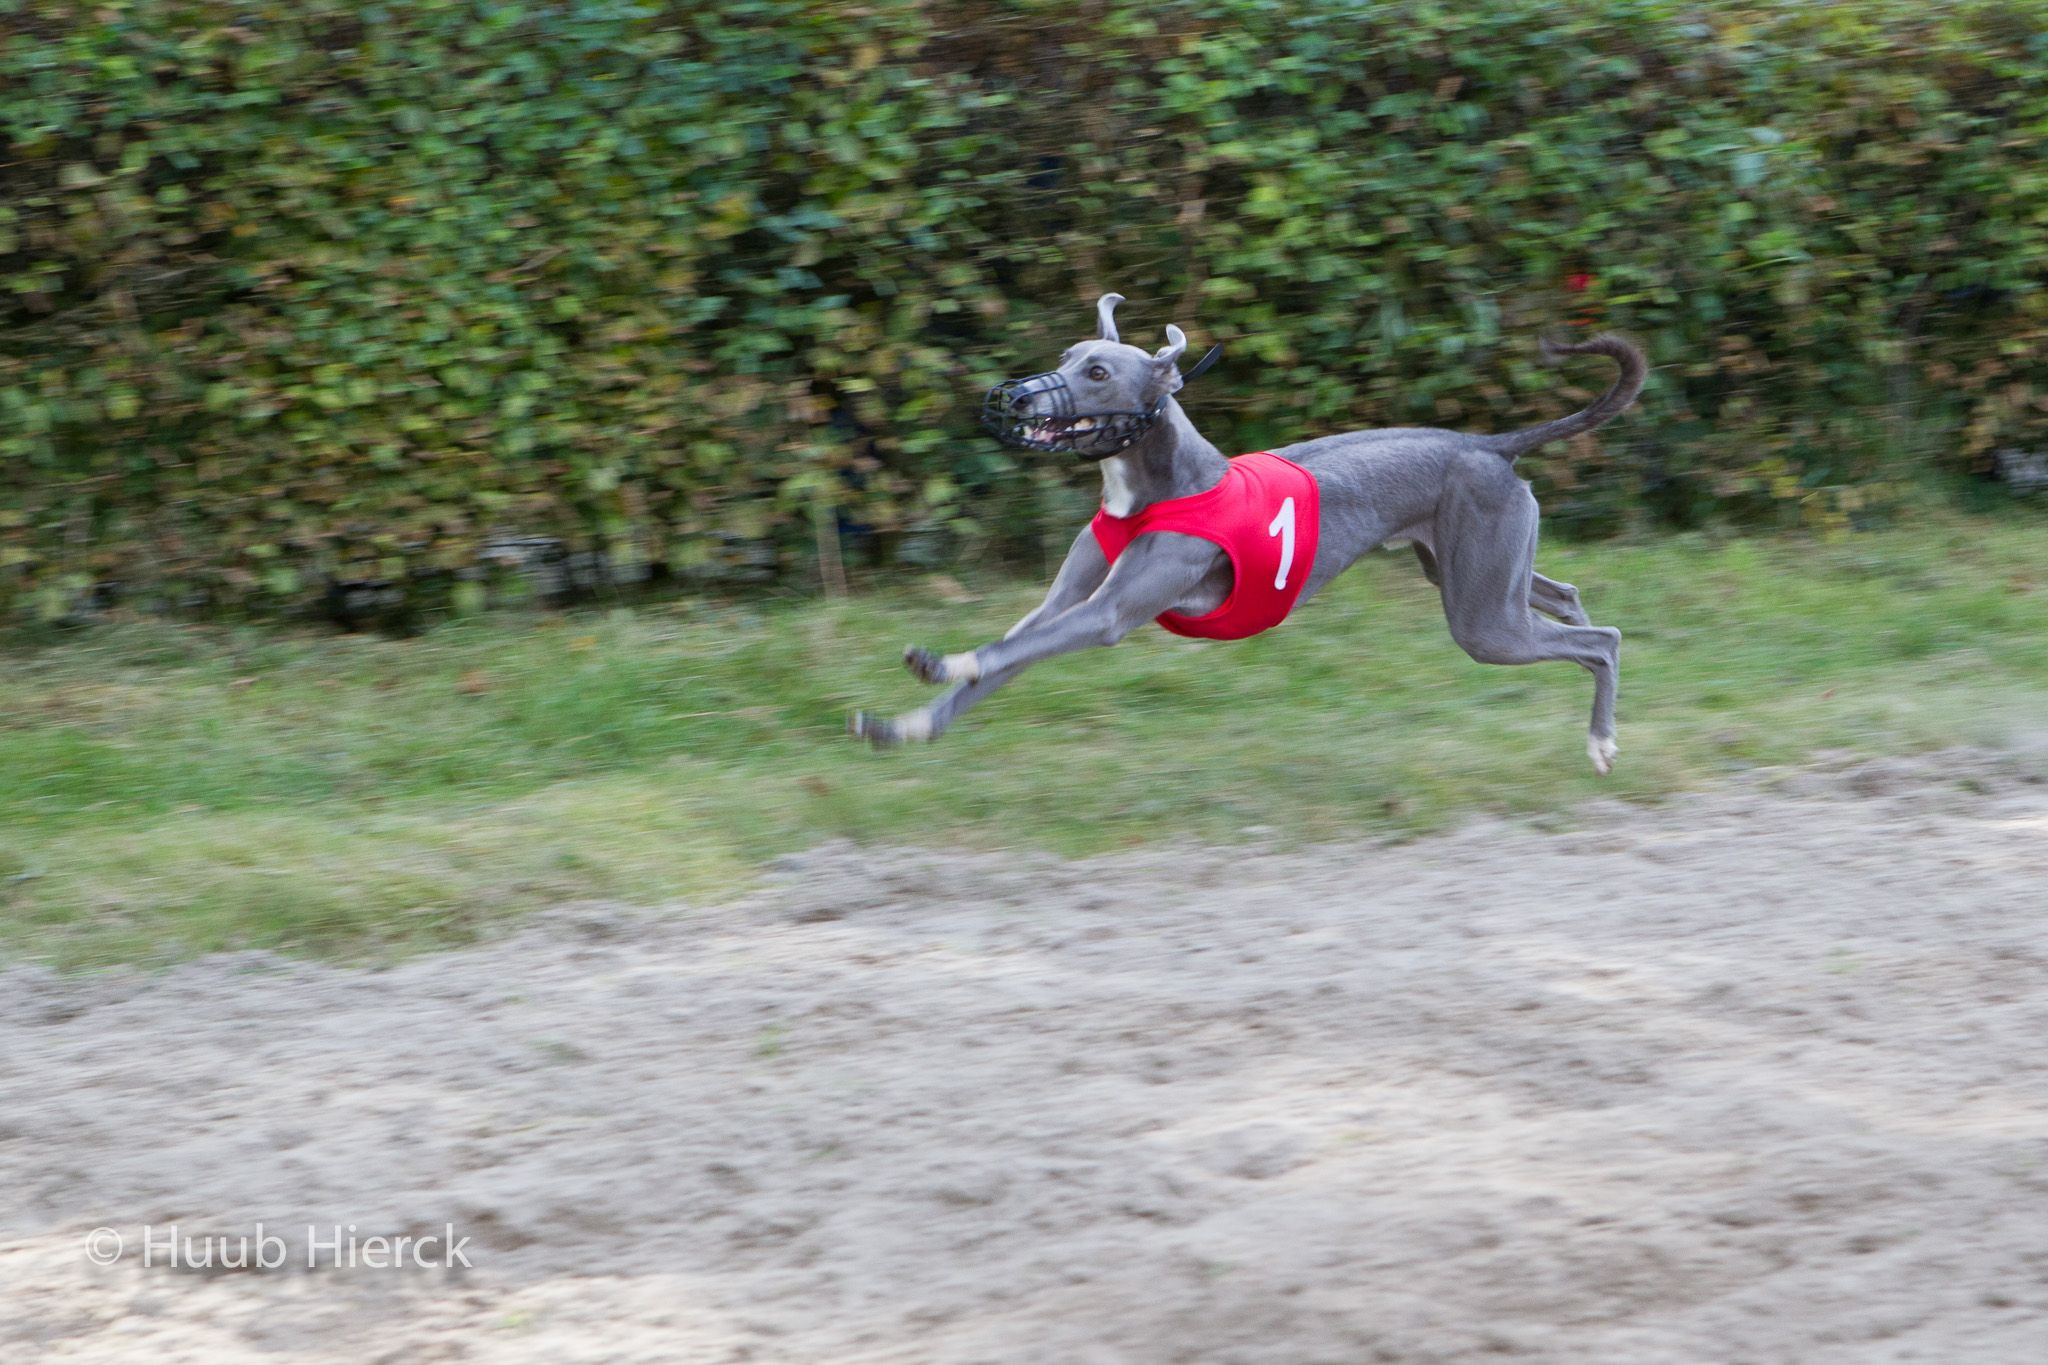 jump the finish line by Angus